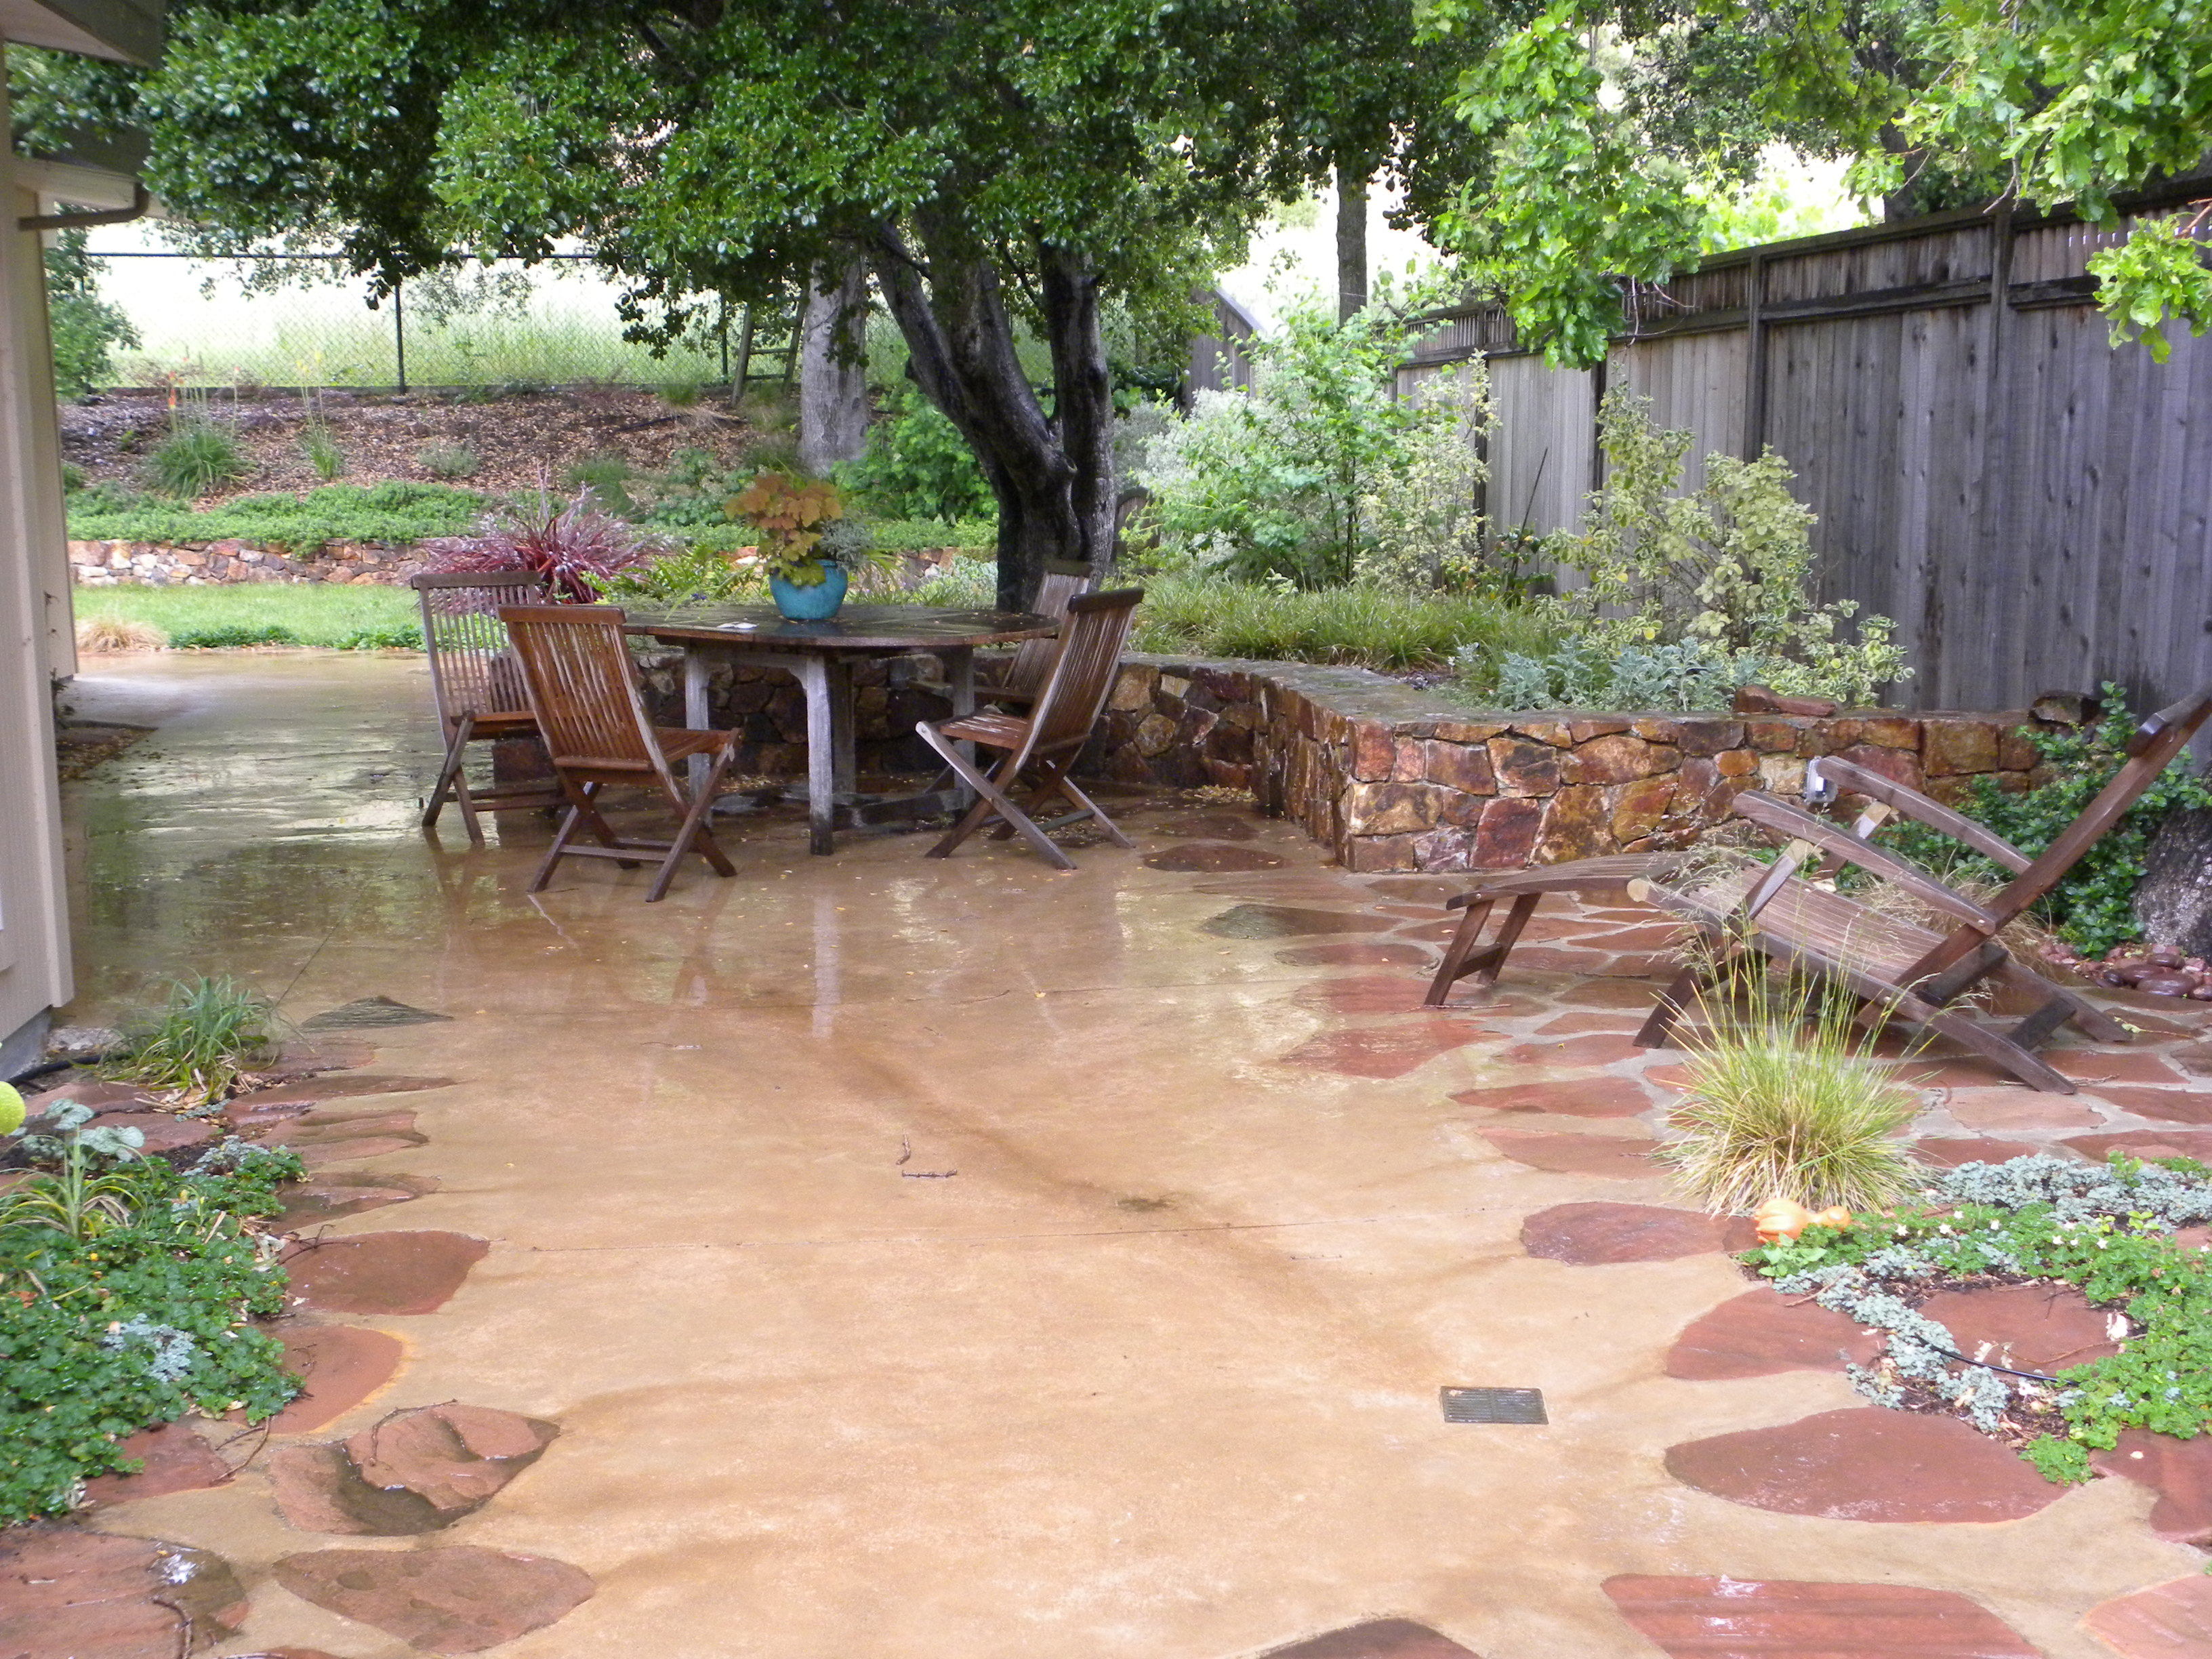 Concrete patio ideas | The Human Footprint